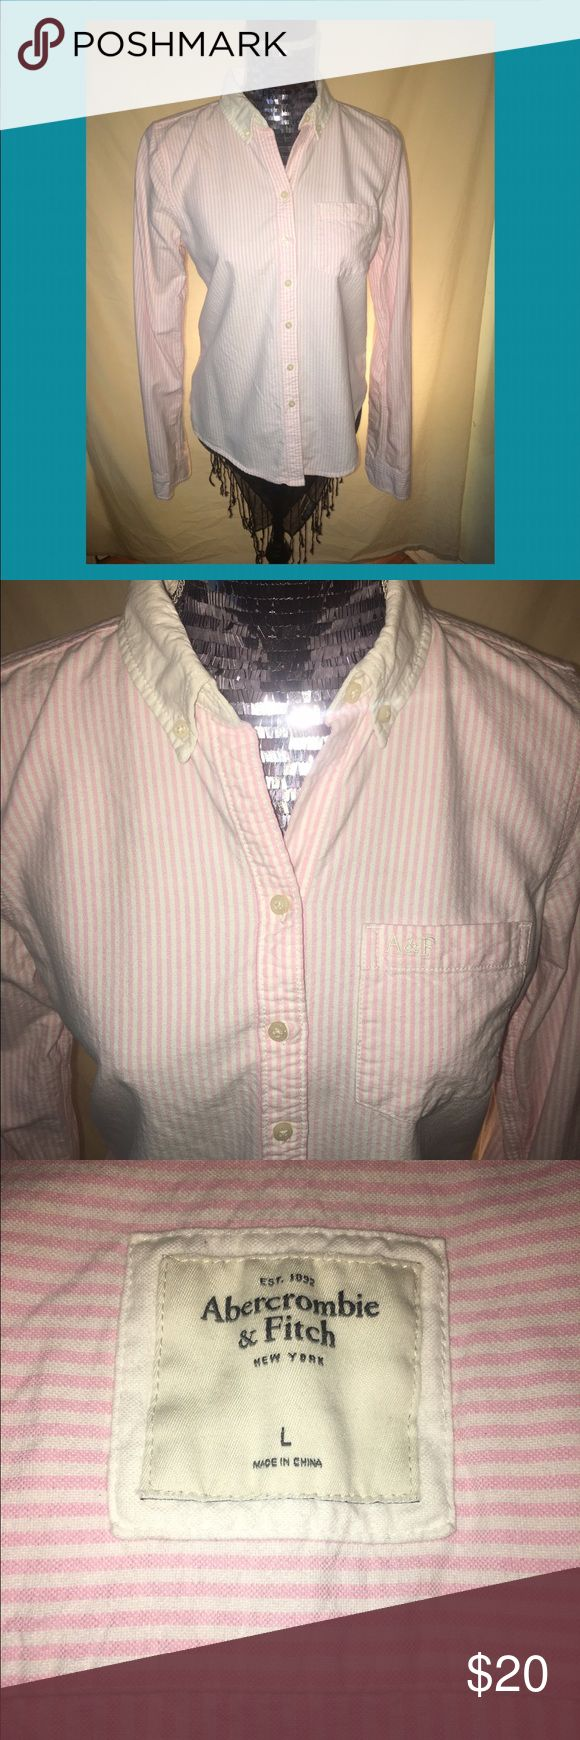 Abercrombie & Fitch pink striped button down top Pink and white pinstriped button down oxford shirt by Abercrombie & Fitch. Great condition. Very feminine. Abercrombie typically runs on the smaller side, so probably not for a busty woman. Abercrombie & Fitch Tops Button Down Shirts